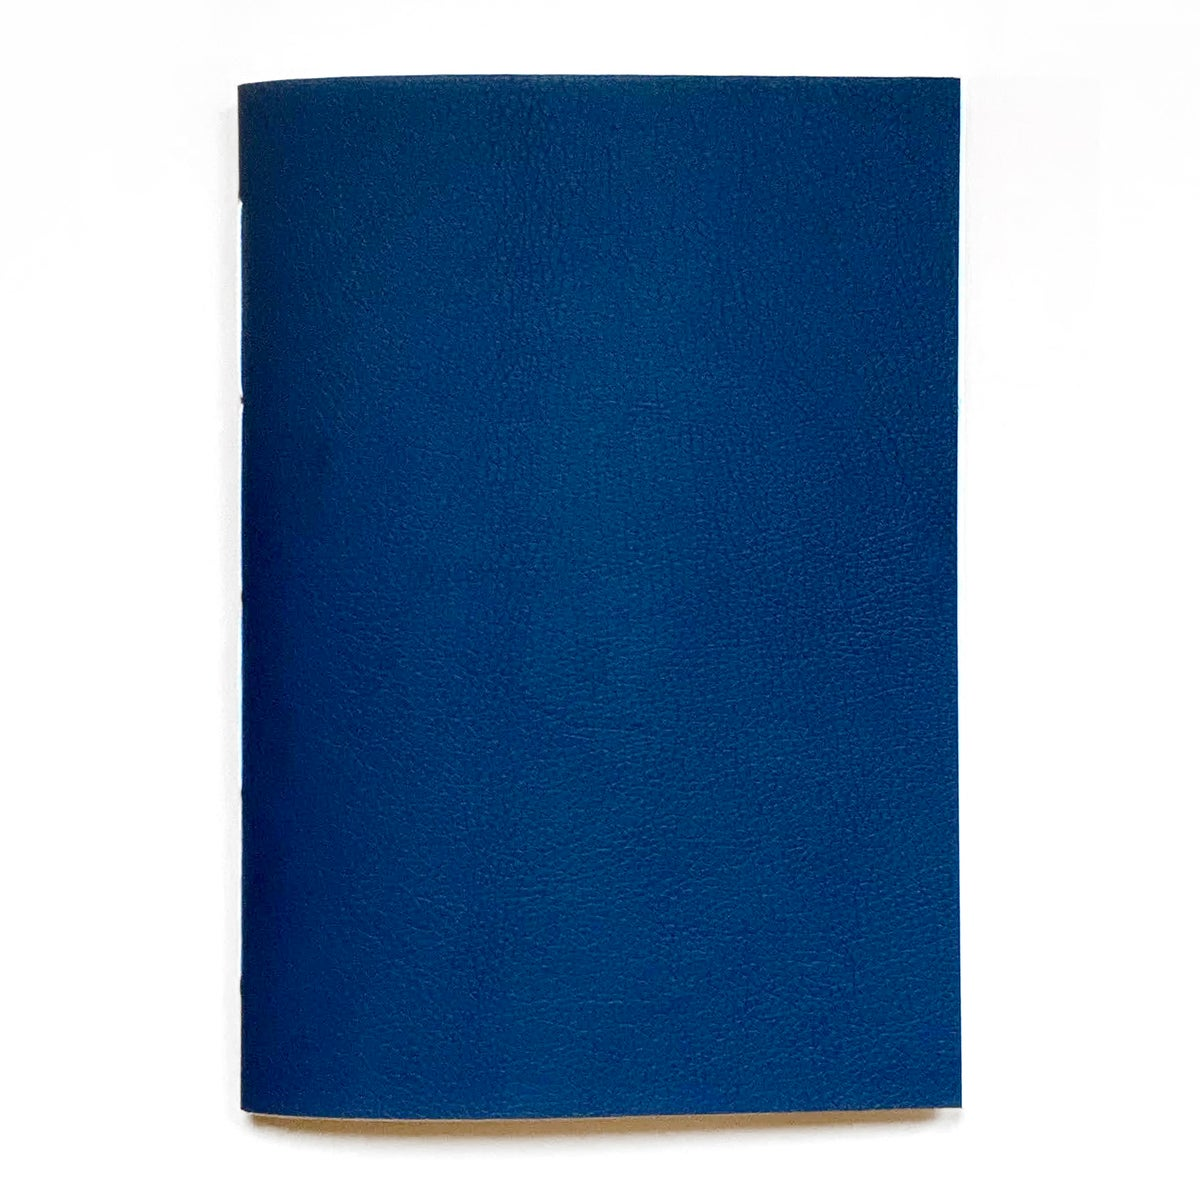 Image of vegan leather notebook – midnight blue